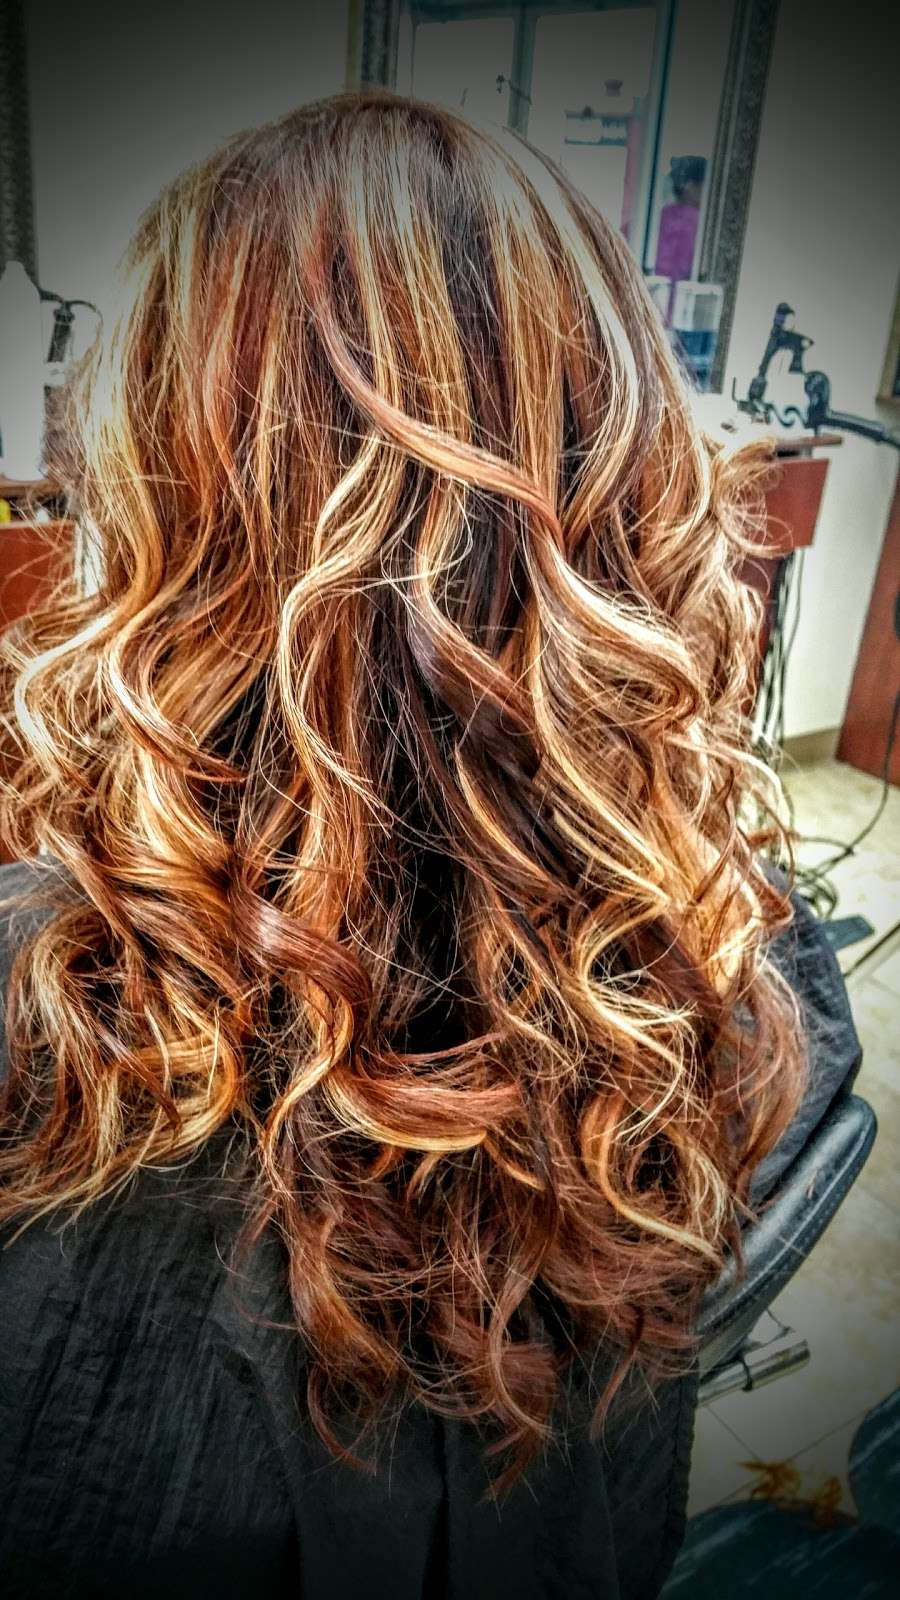 Pro Touch Salon - hair care    Photo 1 of 10   Address: 2746 Manvel Rd, Pearland, TX 77584, USA   Phone: (281) 997-7277